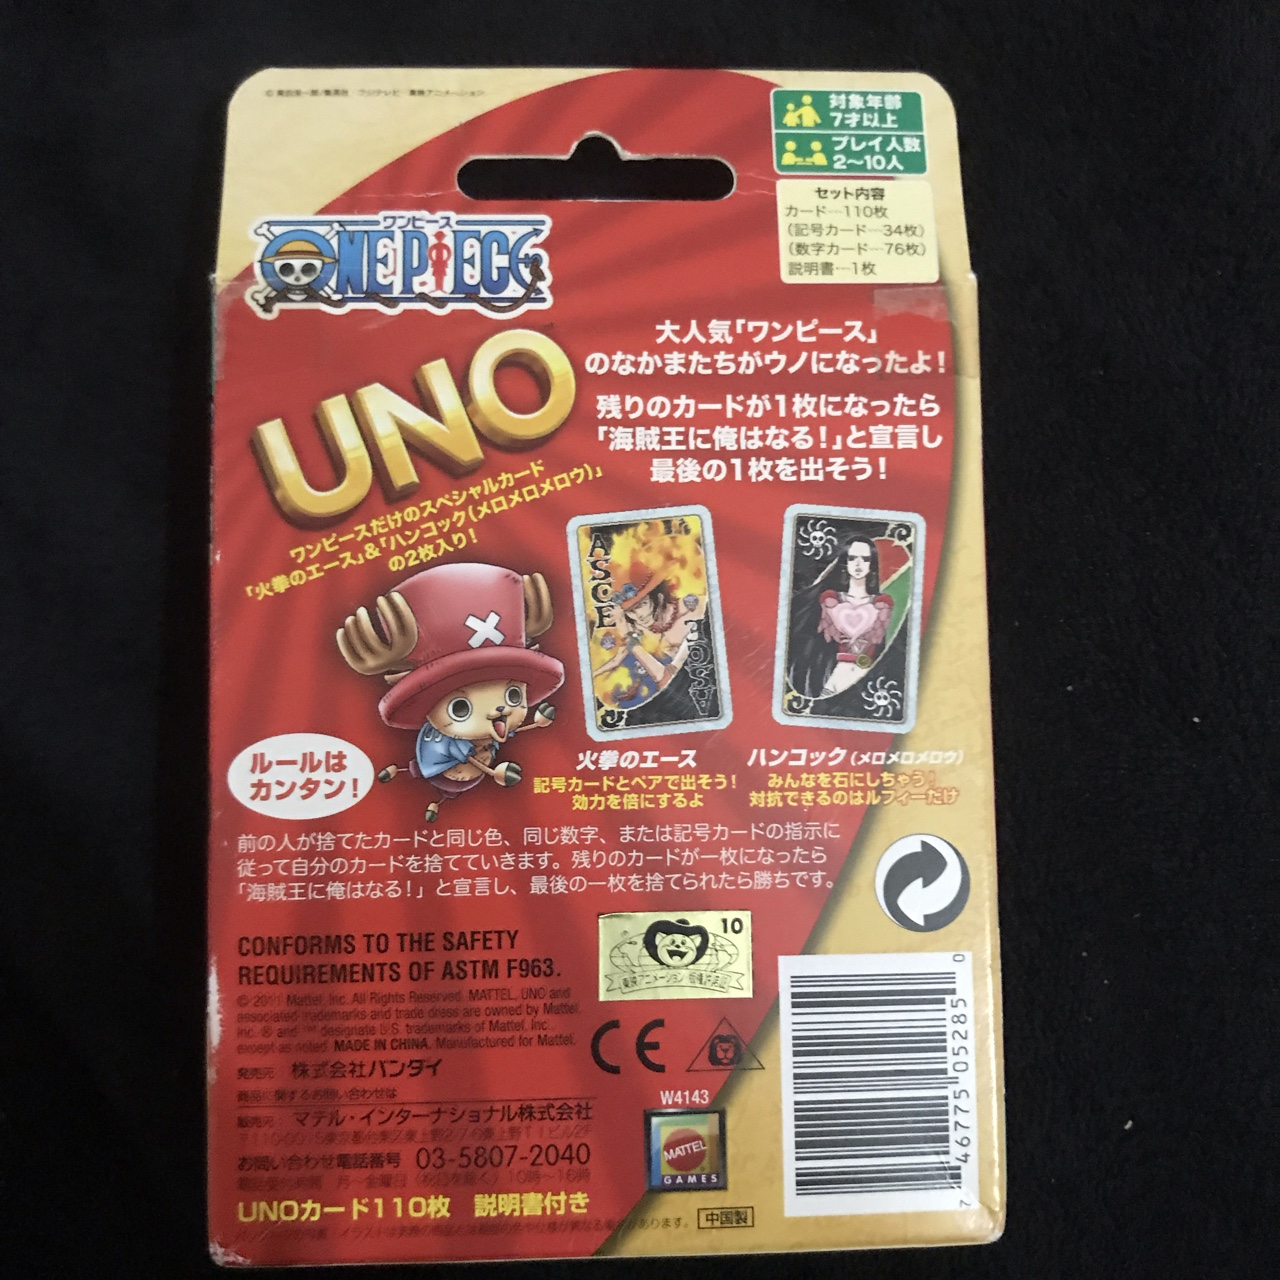 New Bandai One Piece UNO Playing Cards Game W4143 Mattel